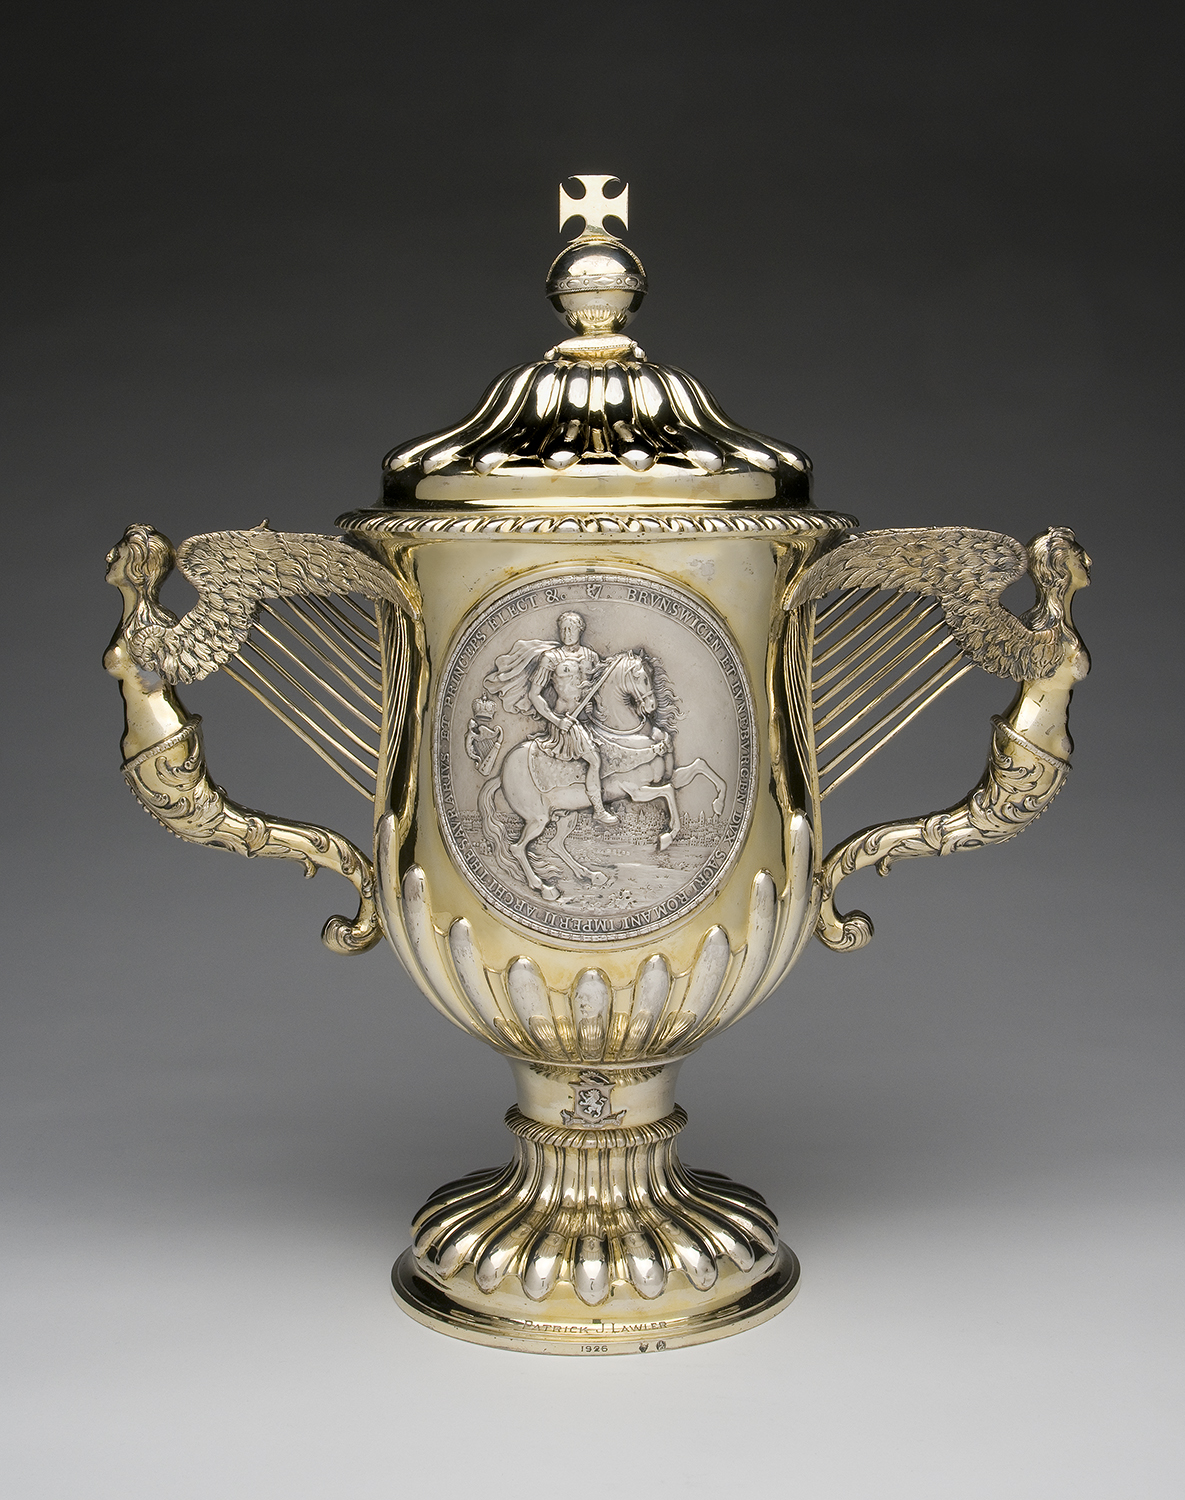 Two Handled Samuel Walker. Silver Cup and Cover, c. 1761 – 1766.  On loan from Philadelphia Museum of Art. Samuel Walker was one of a famous family of  silversmiths from Dublin. The exhibition also  features an extensive collection of Irish silver objects from the San  Antonio Museum of  Art, Texas.